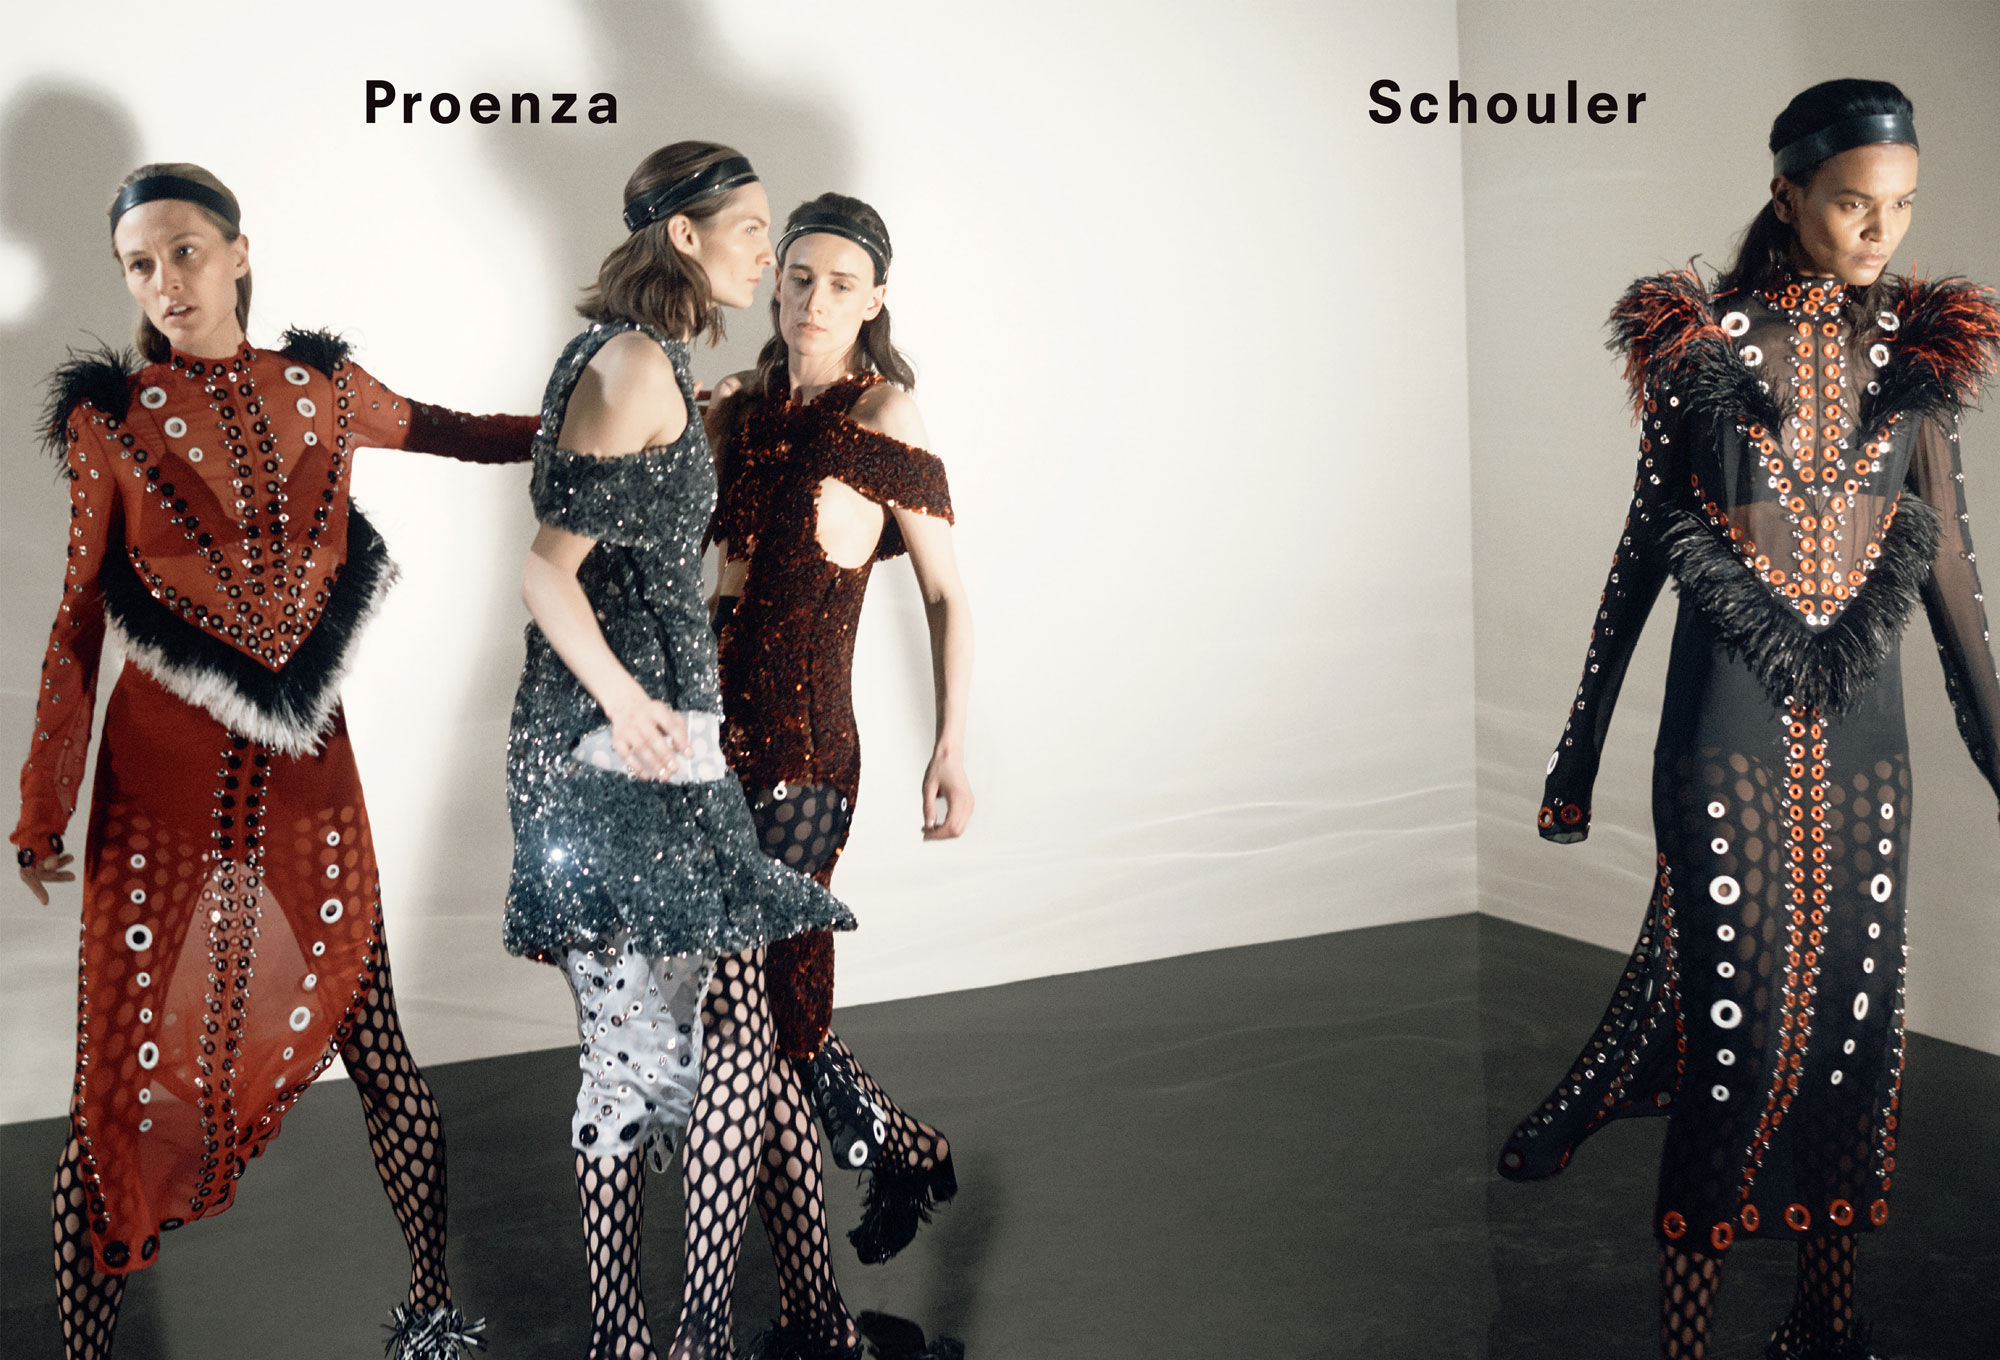 d1e9792bcf4 Proenza Schouler Launches Fall 2015 Ad Campaign Shot By David Sims - Daily  Front Row